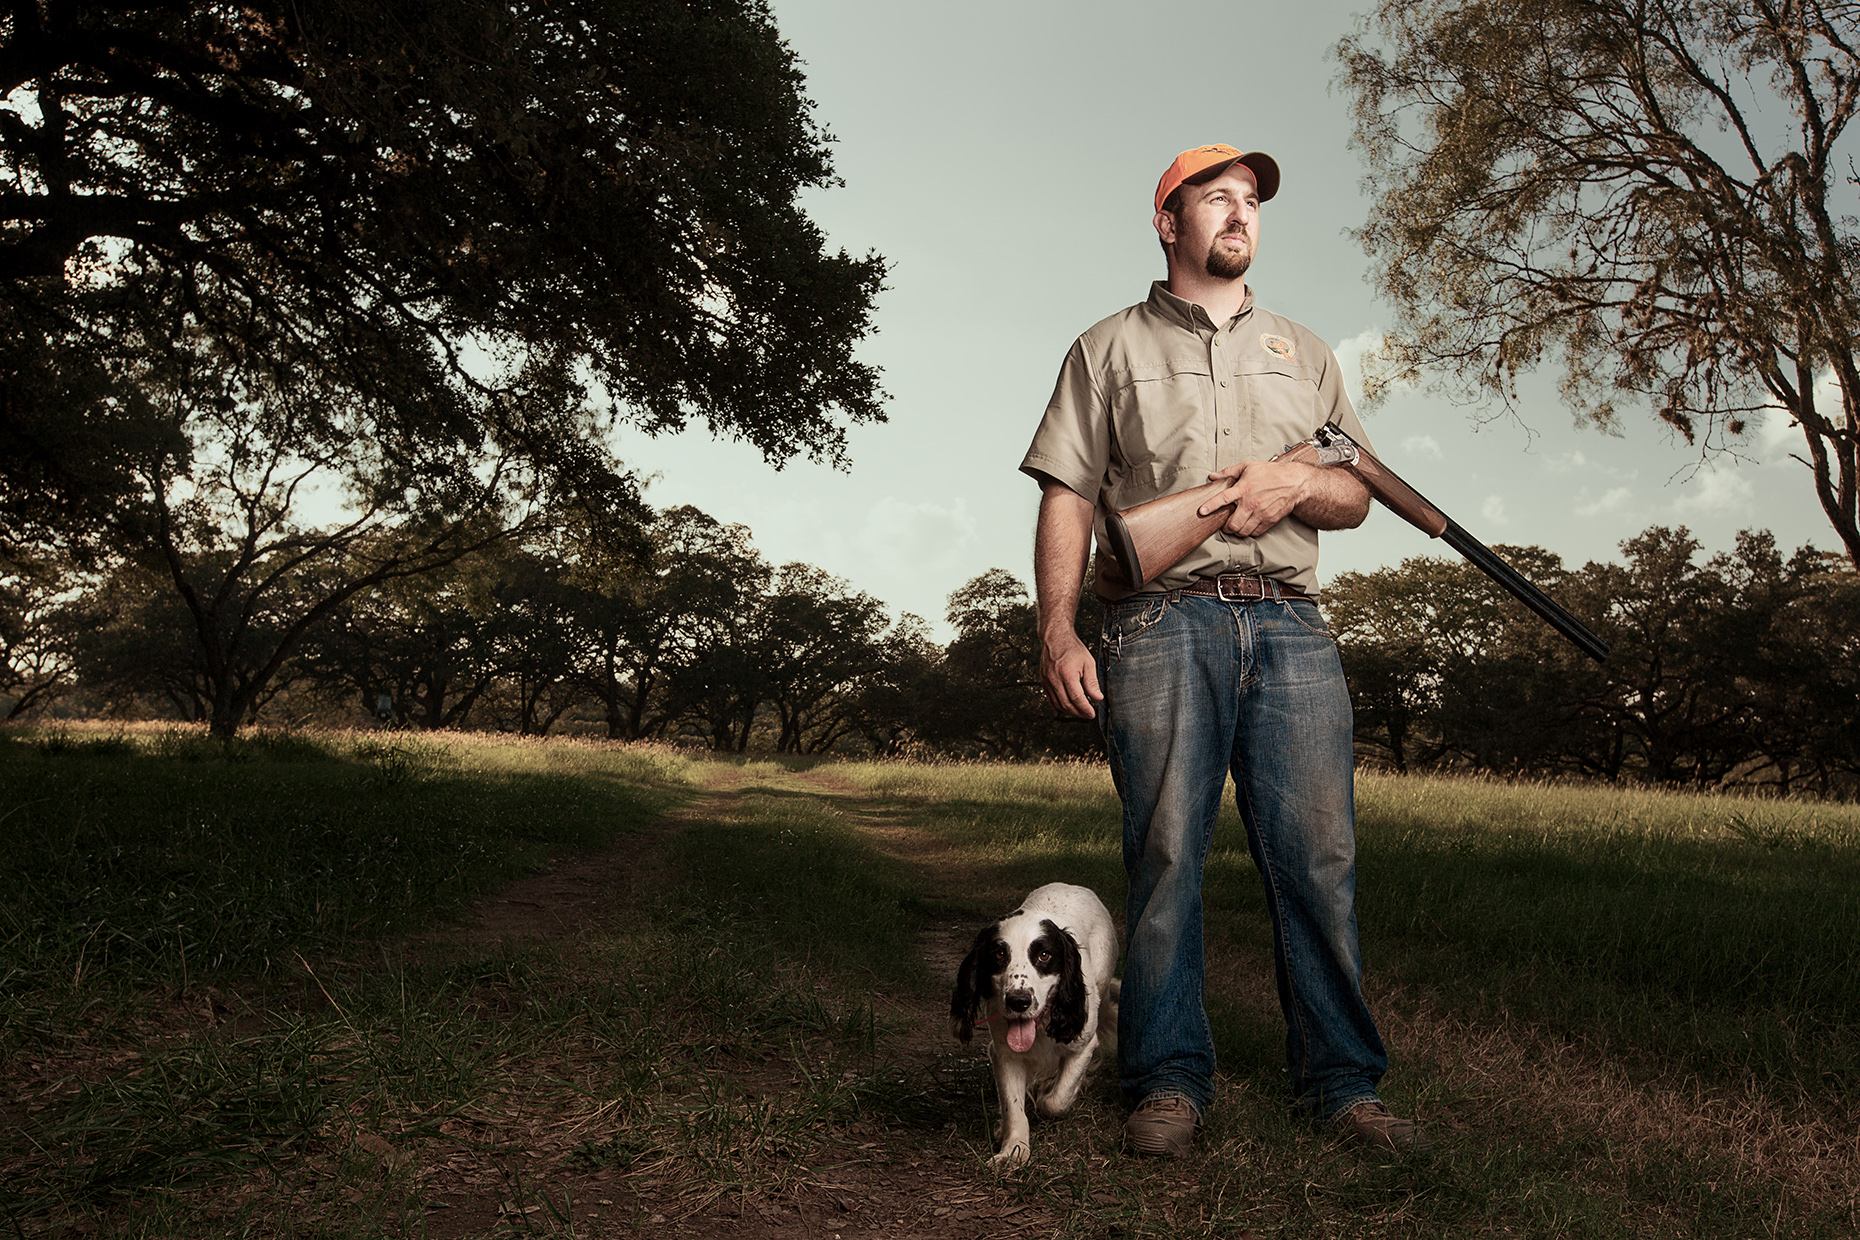 Joseph Zinsmeyer and Tramp at Joshua Creek Ranch for Texas Monthly, shot by Creative Editorial and Commercial Photographer Josh Huskin.